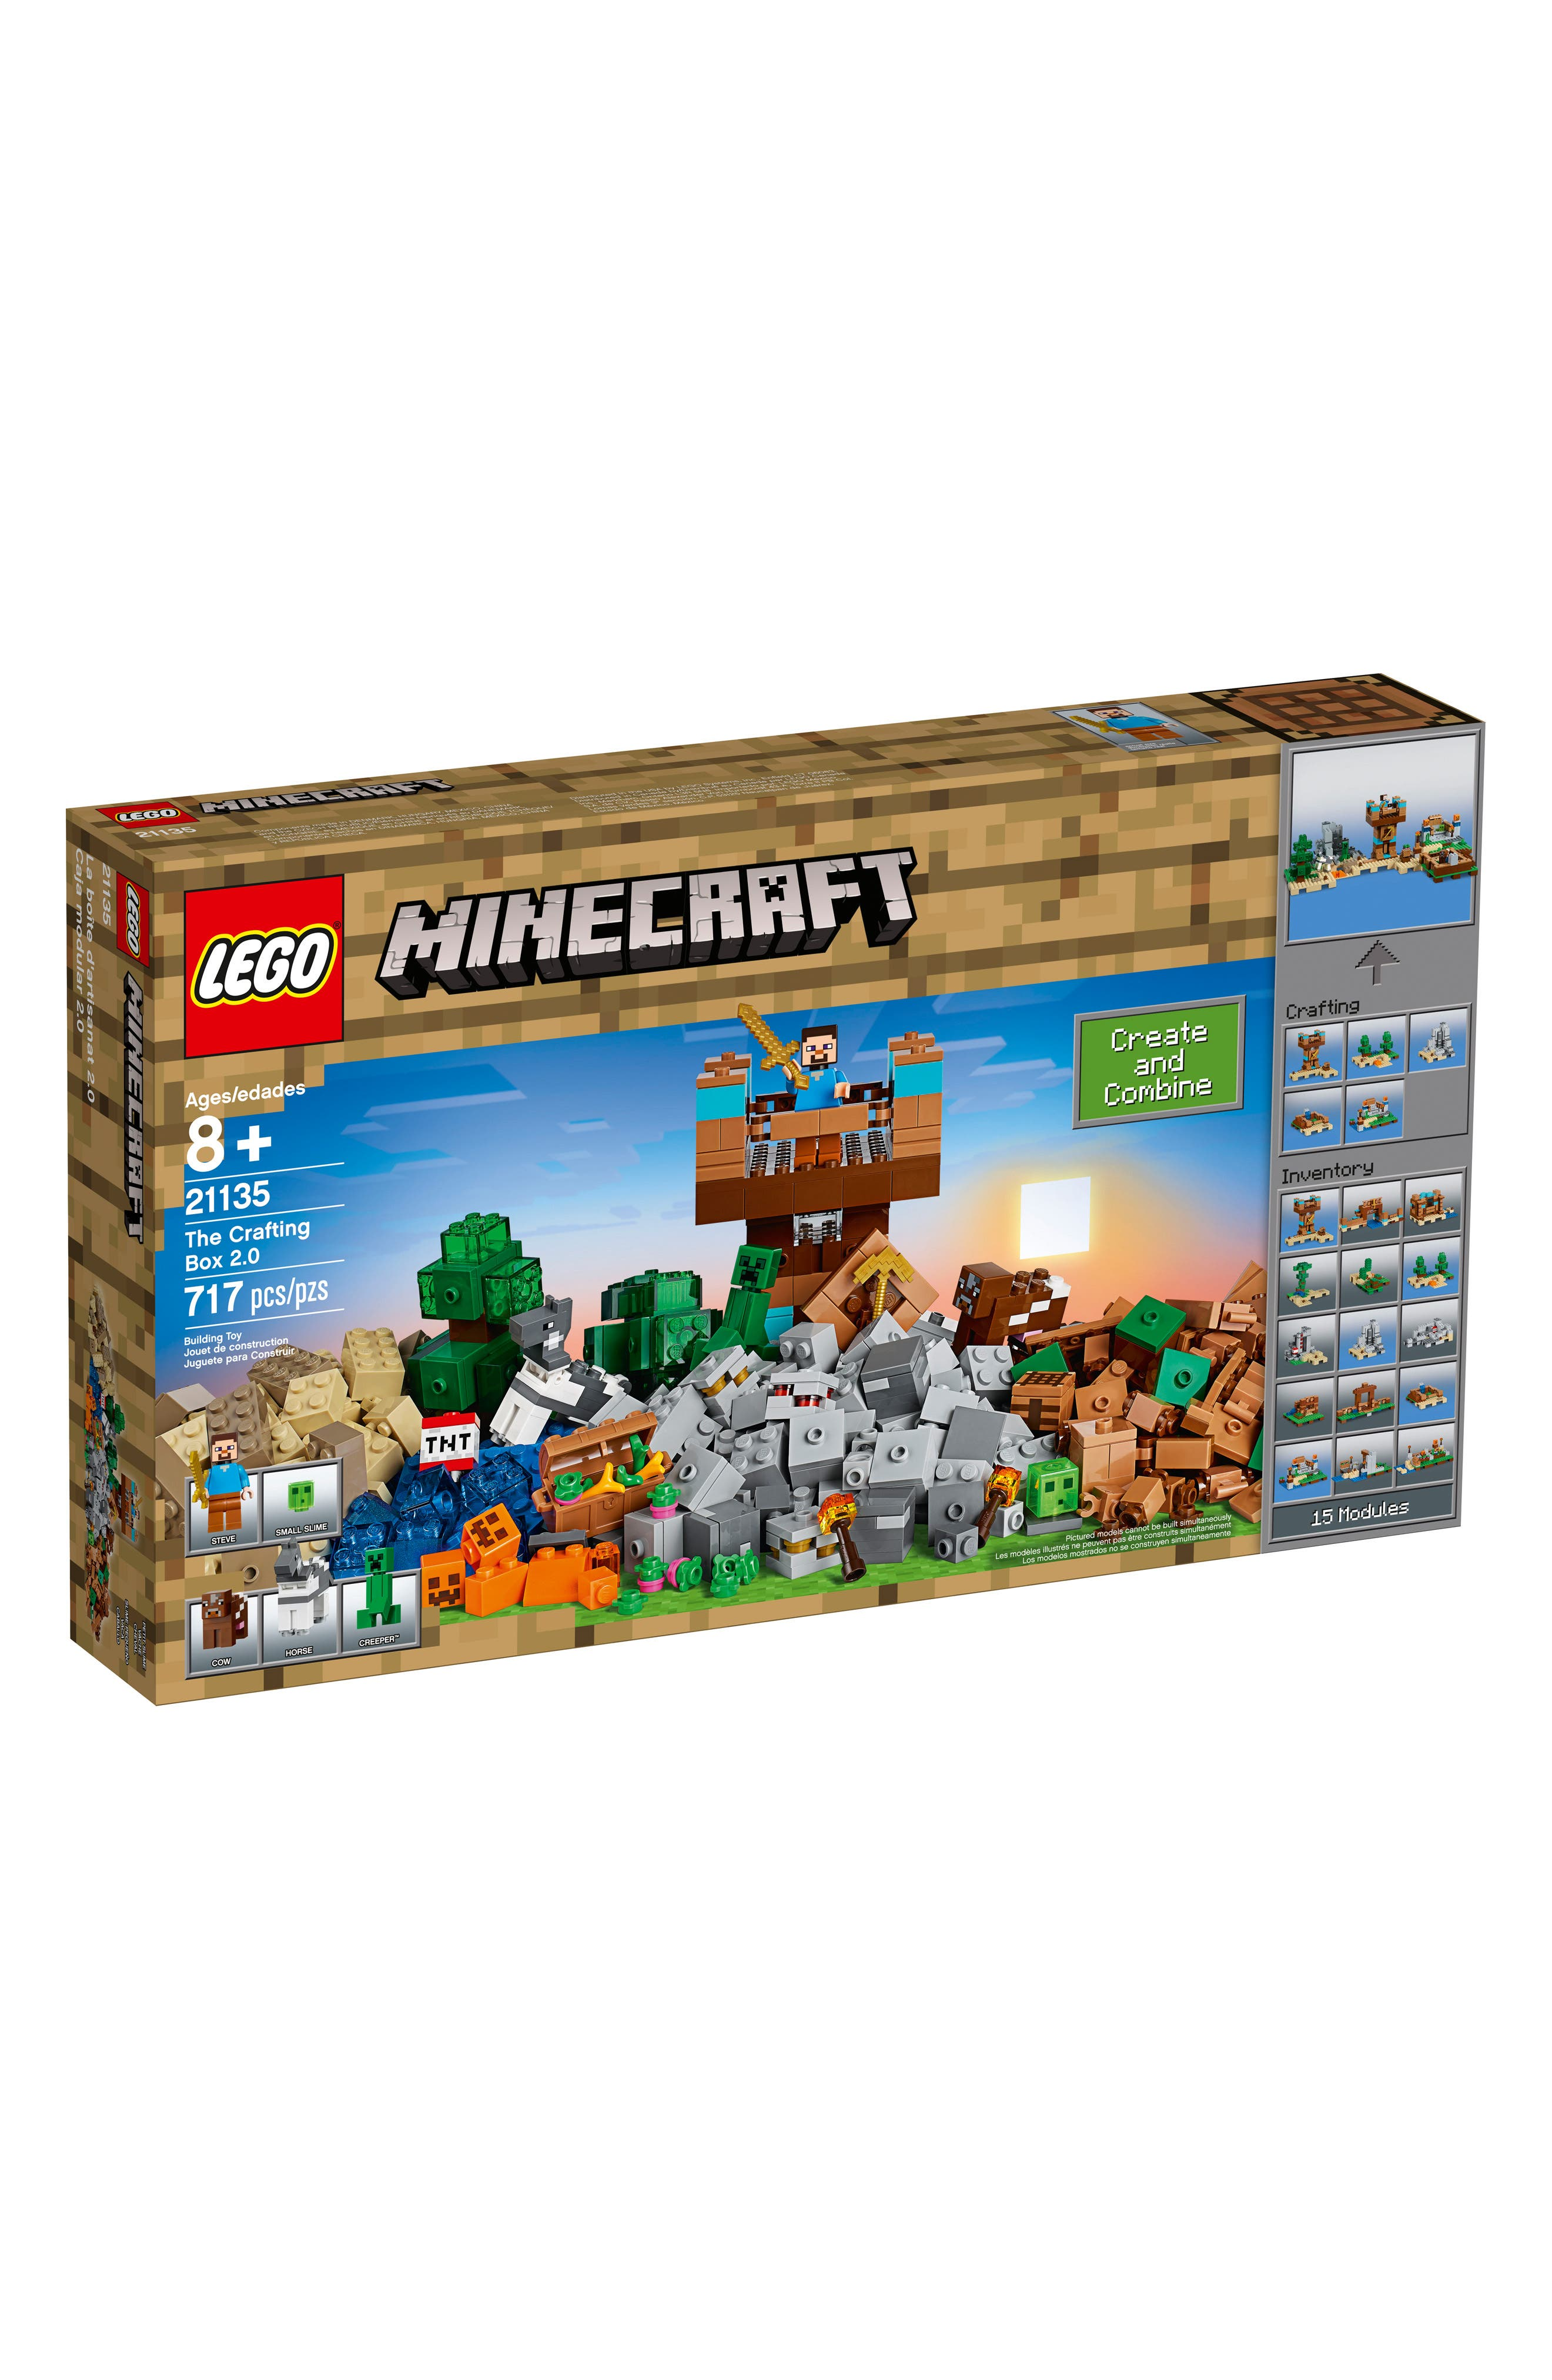 Alternate Image 1 Selected - LEGO® Minecraft™ The Crafting Box 2.0 Play Set - 21135